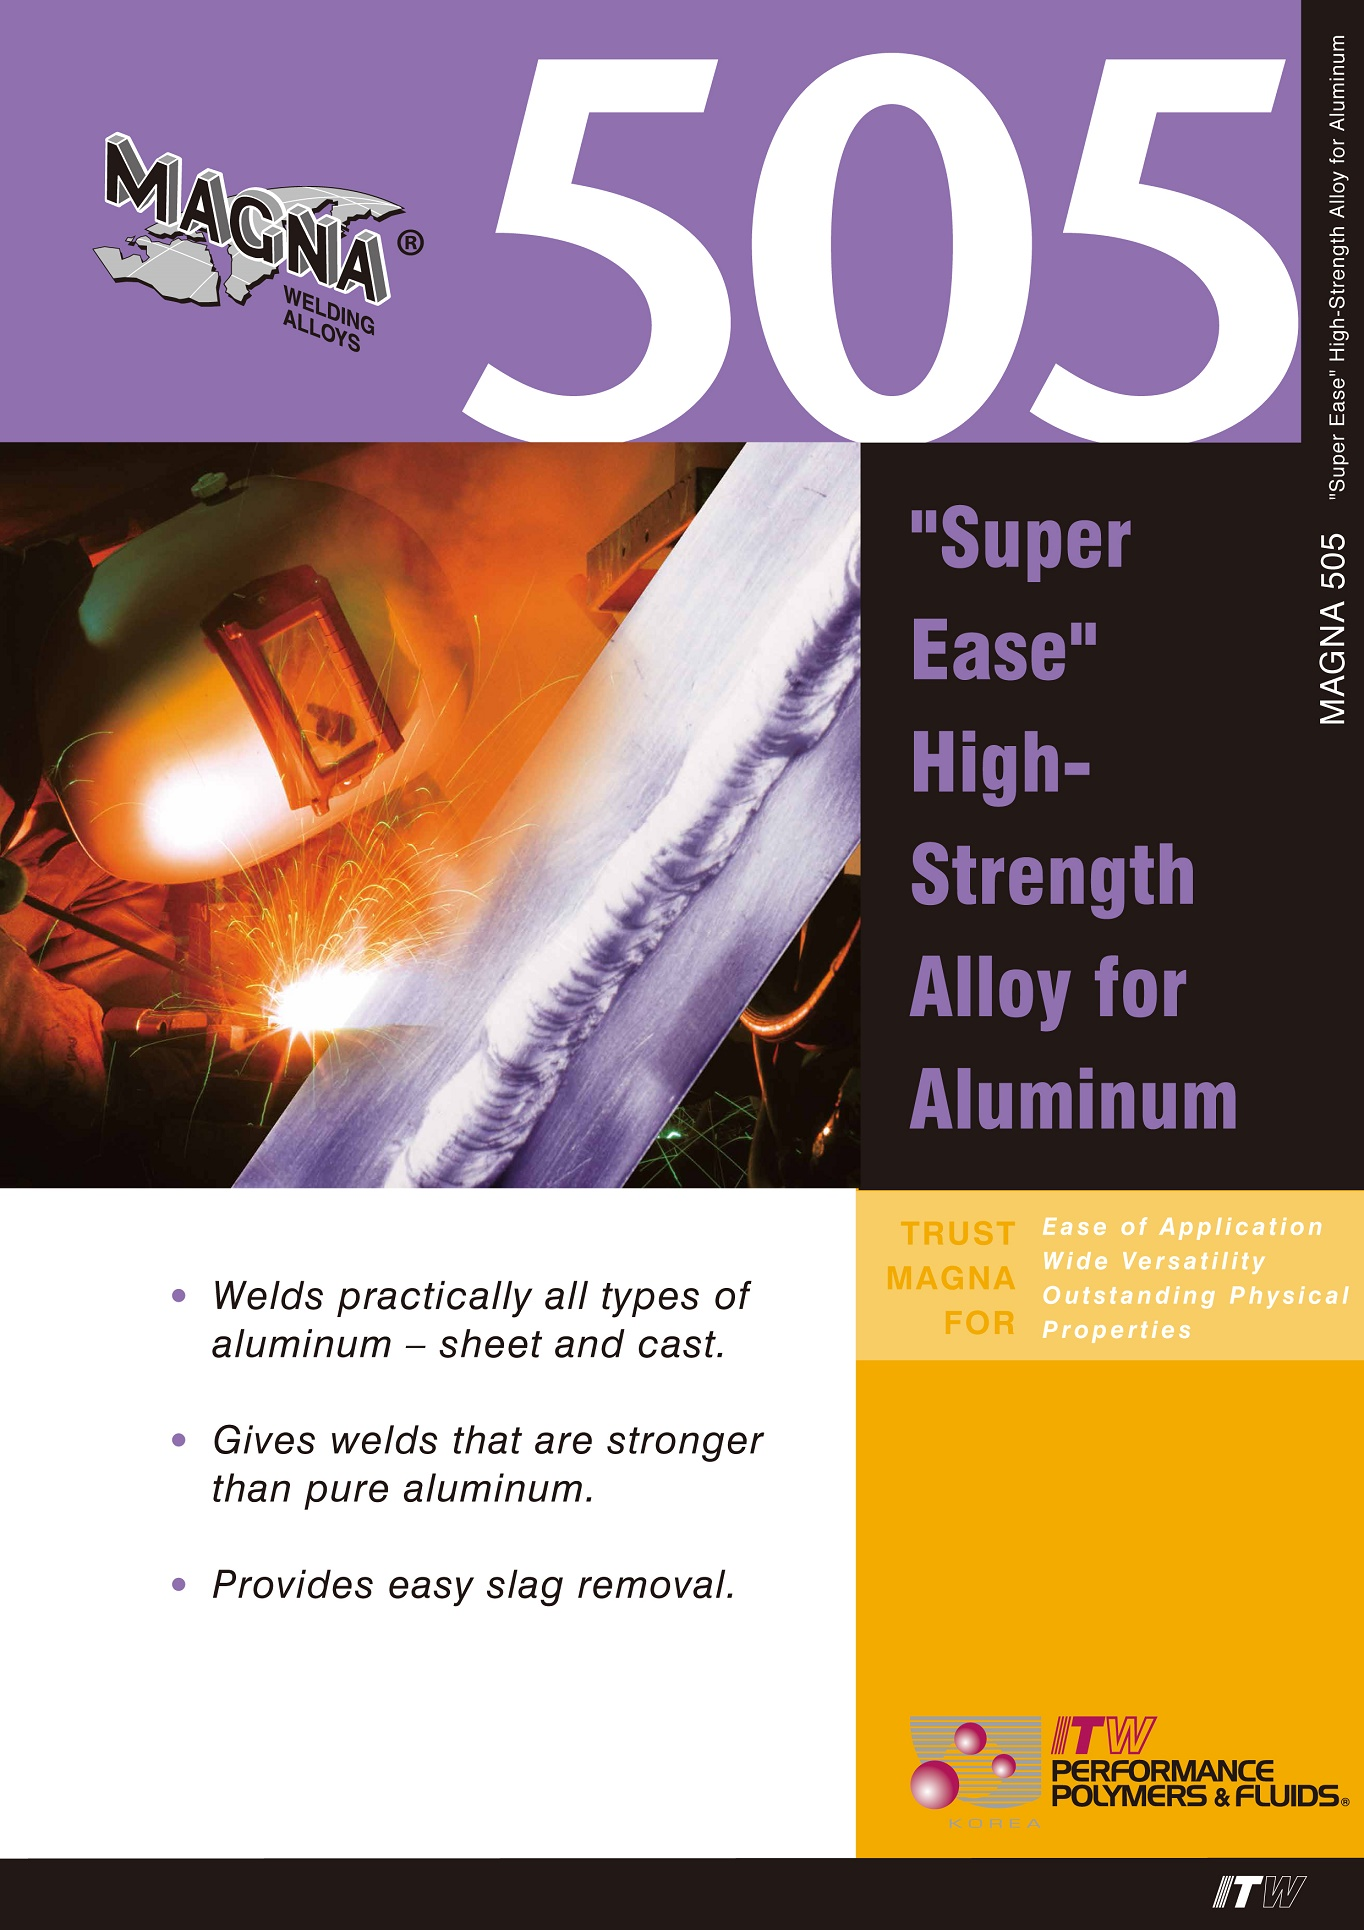 ARC WELDING-for aluminum alloys_505_en_dm_160101-1